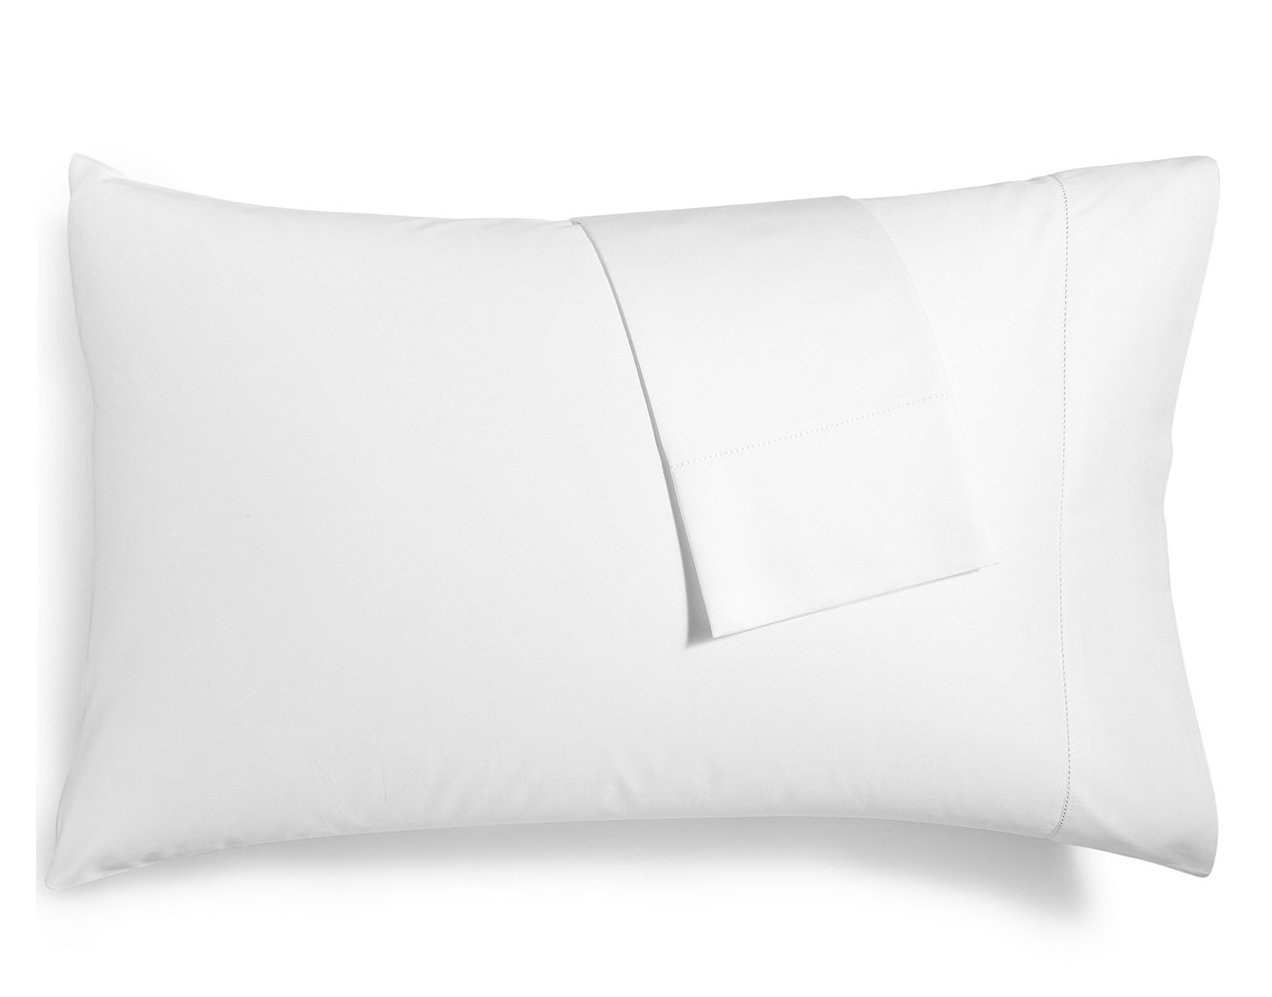 Hotel Collection Pair of 680 Thread Count 100% Supima Cotton Standard Pillowcases White